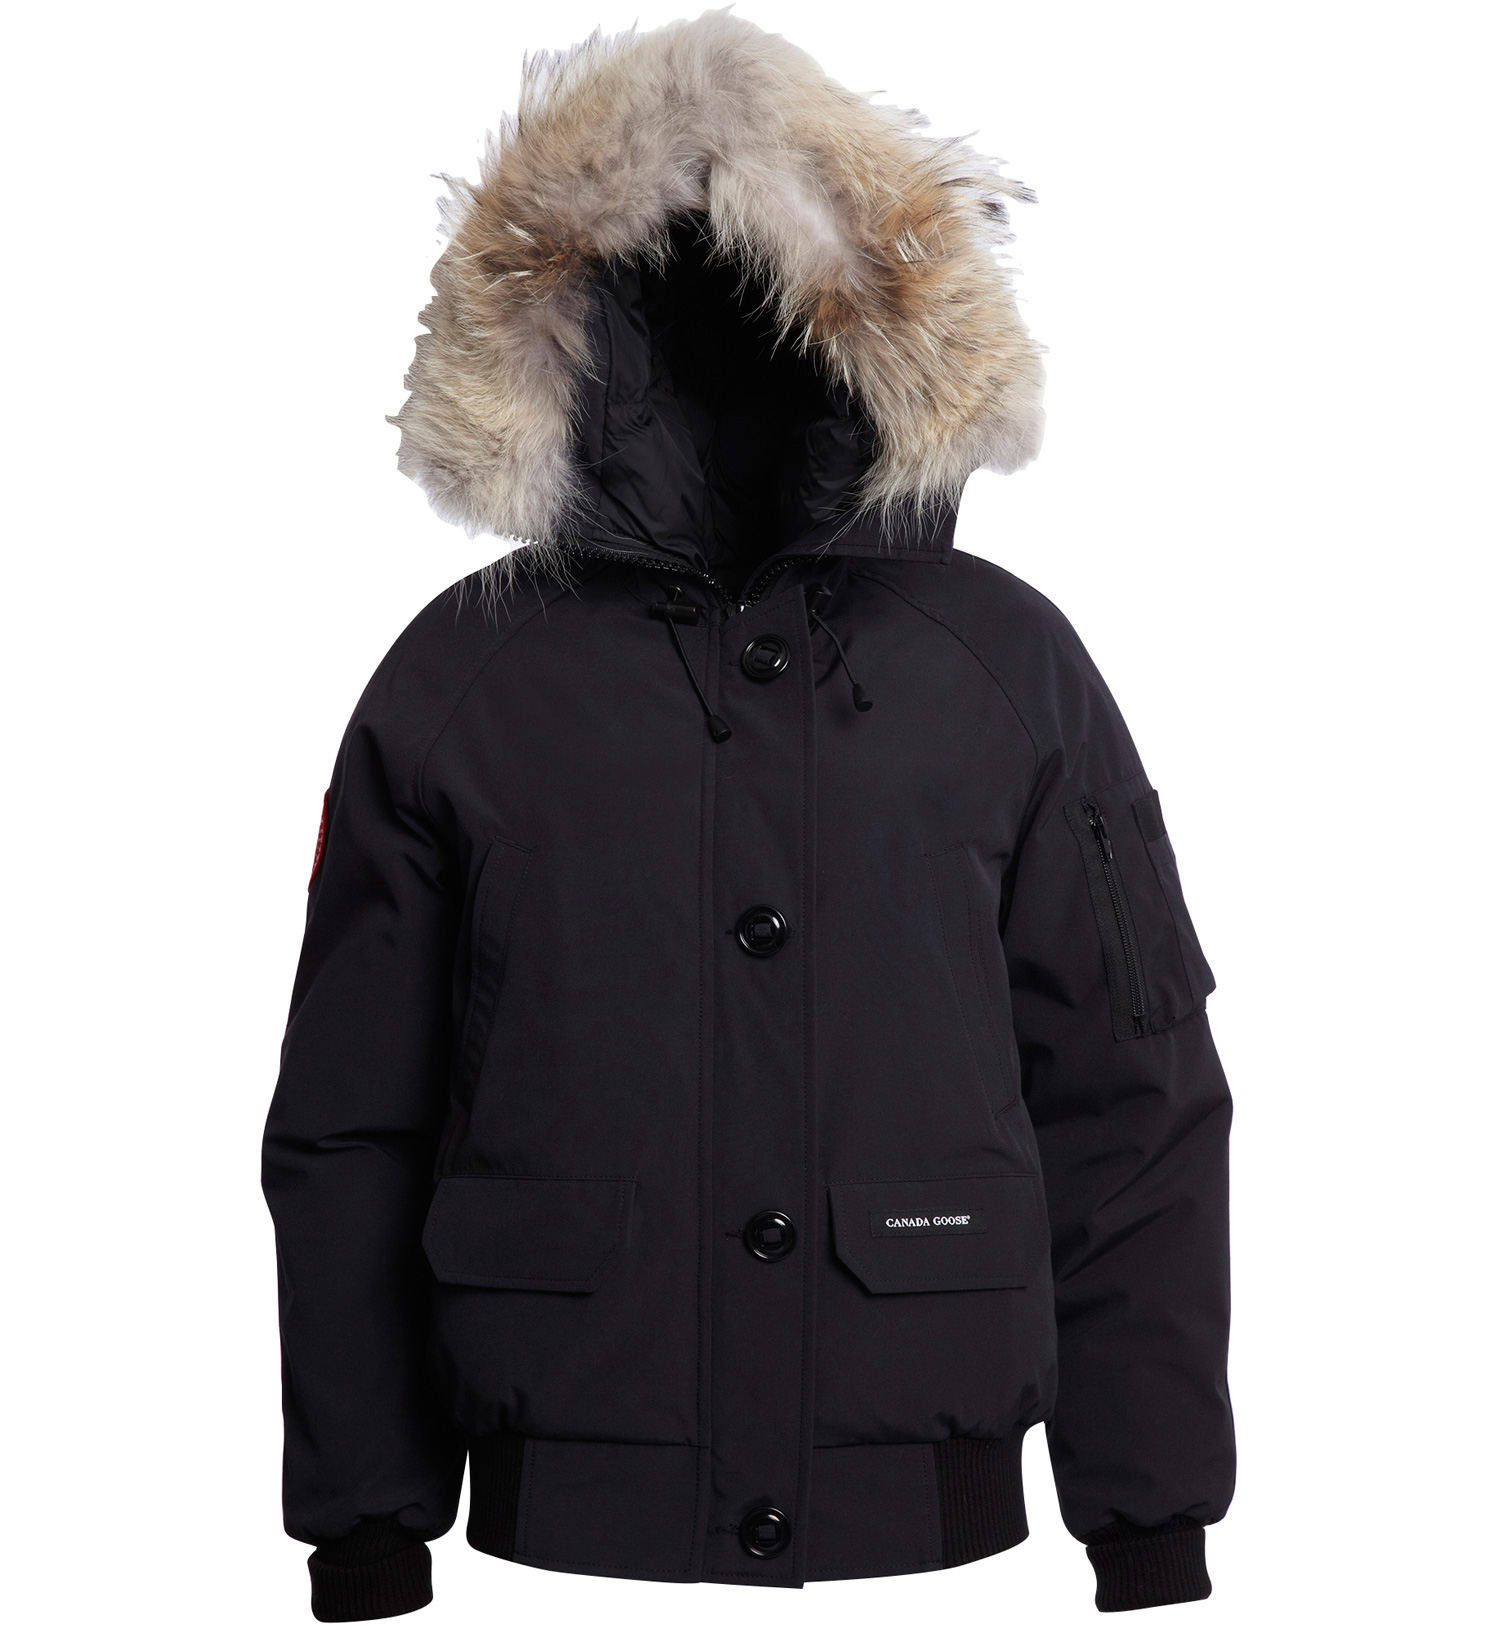 marque doudoune canada goose canada goose victoria parka. Black Bedroom Furniture Sets. Home Design Ideas